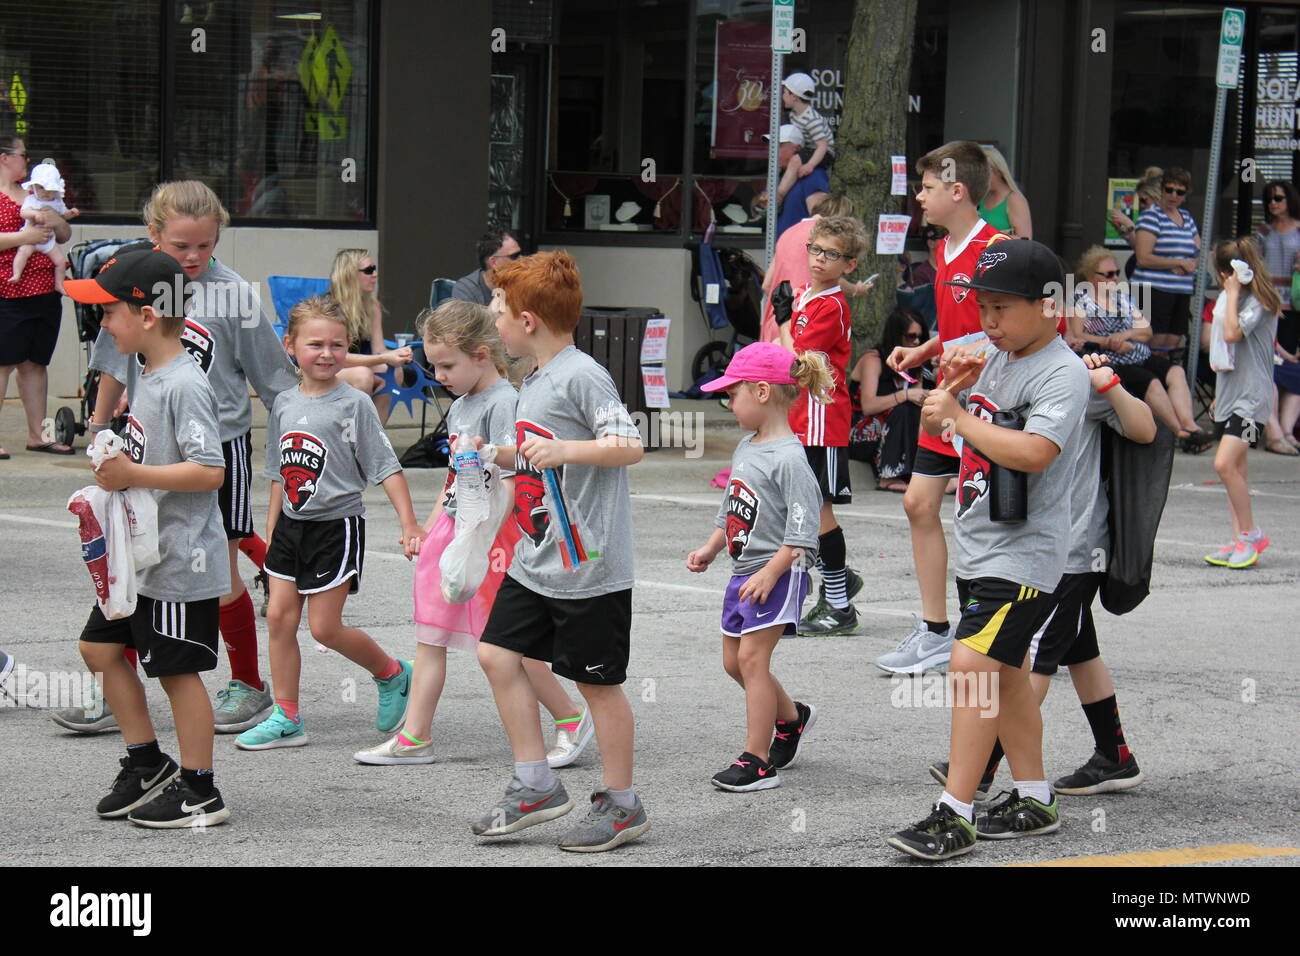 Scene from the Memorial Day Parade in small town Park Ridge, Illinois. - Stock Image